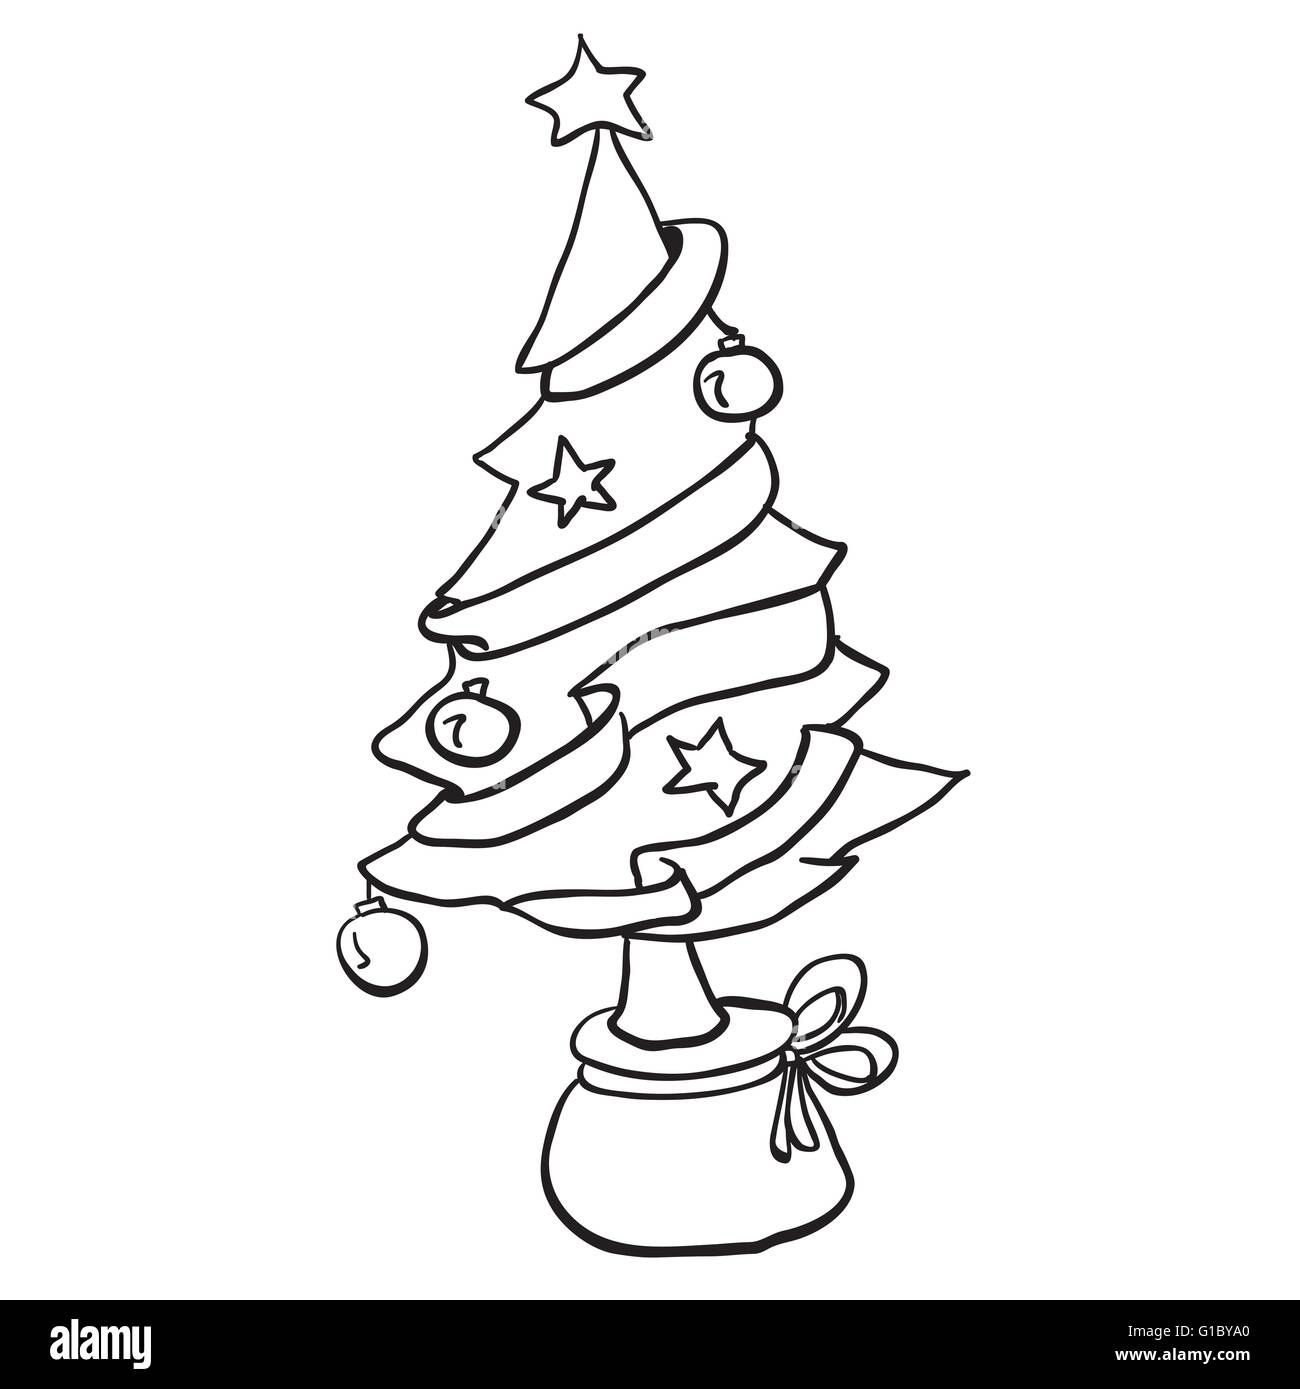 Simple Black And White Christmas Tree Cartoon Stock Vector Art